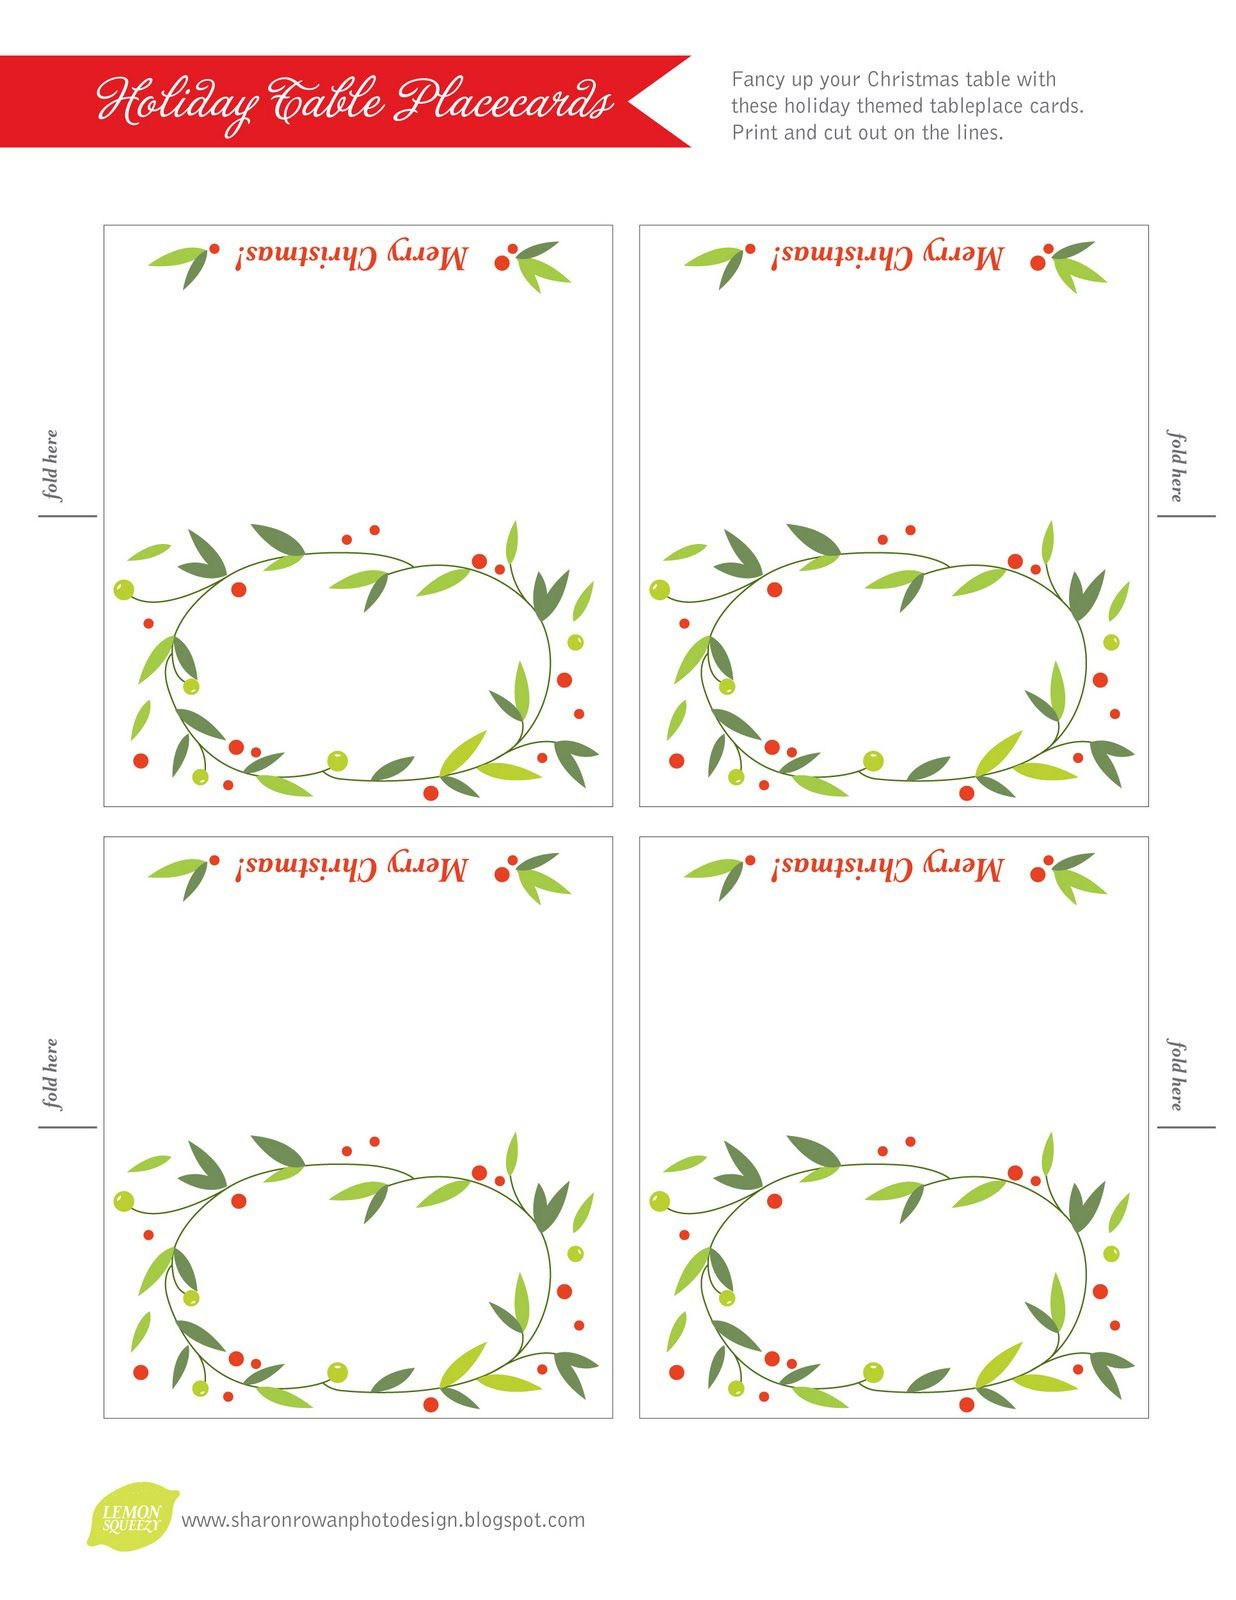 Pinkay Kostrencich On Event Ideas | Pinterest | Christmas Place - Christmas Table Name Cards Free Printable